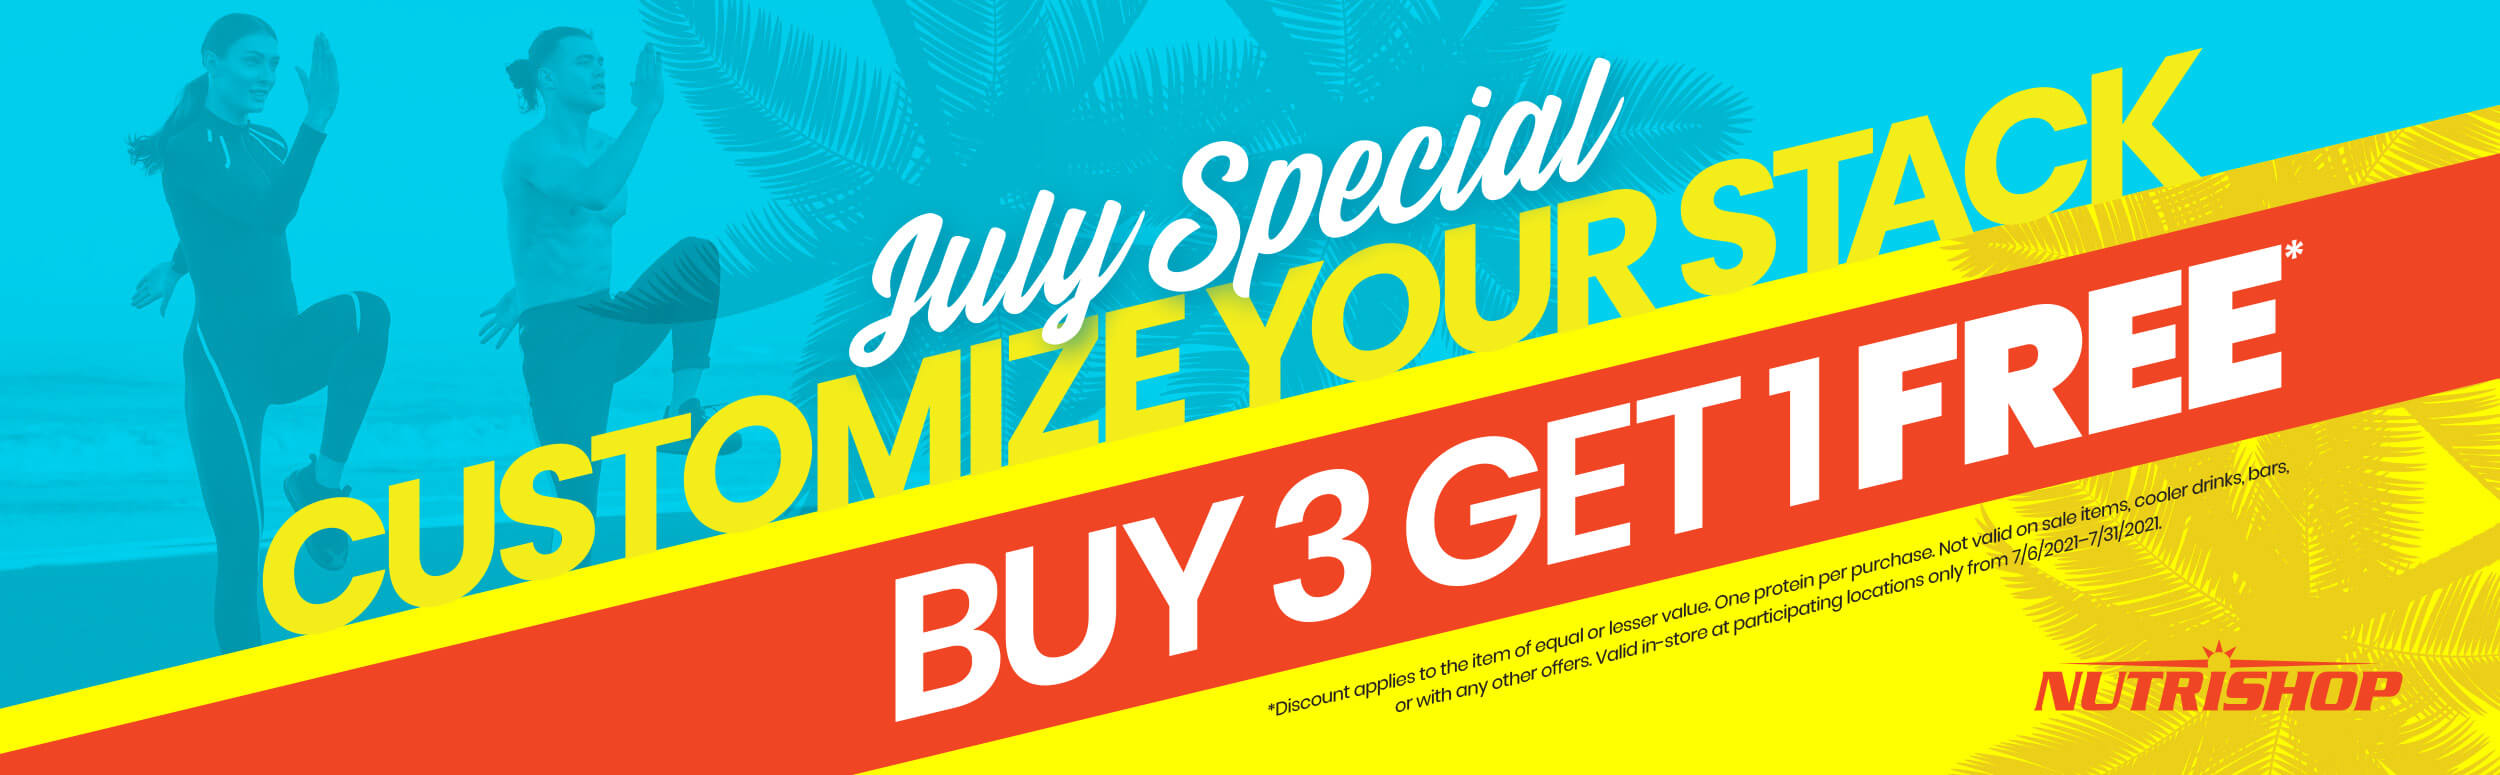 July Special customize your stack buy three get one free